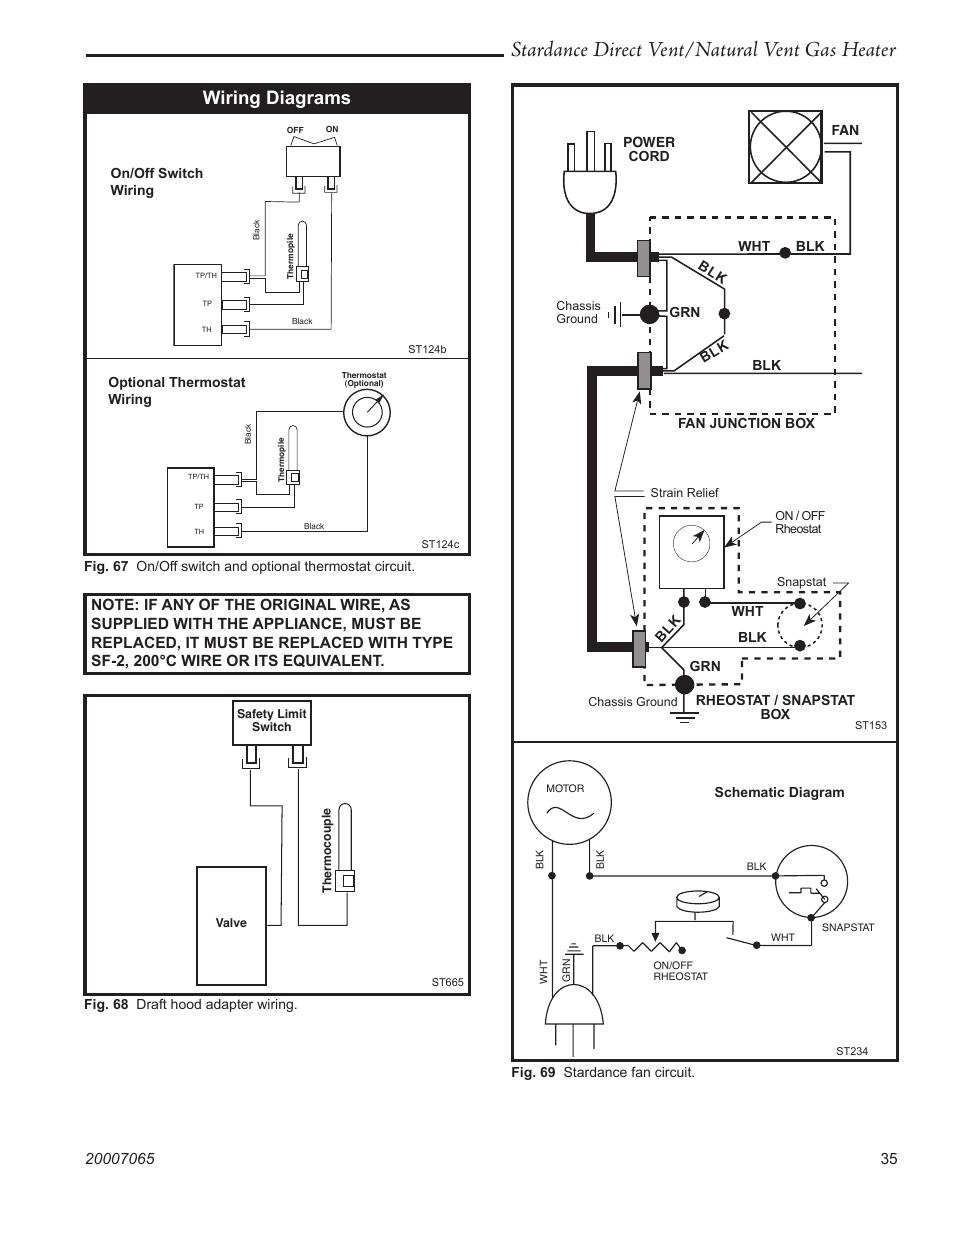 Stardance direct ventnatural vent gas    heater        Wiring    diagrams   Vermont Casting Stardance SDV30